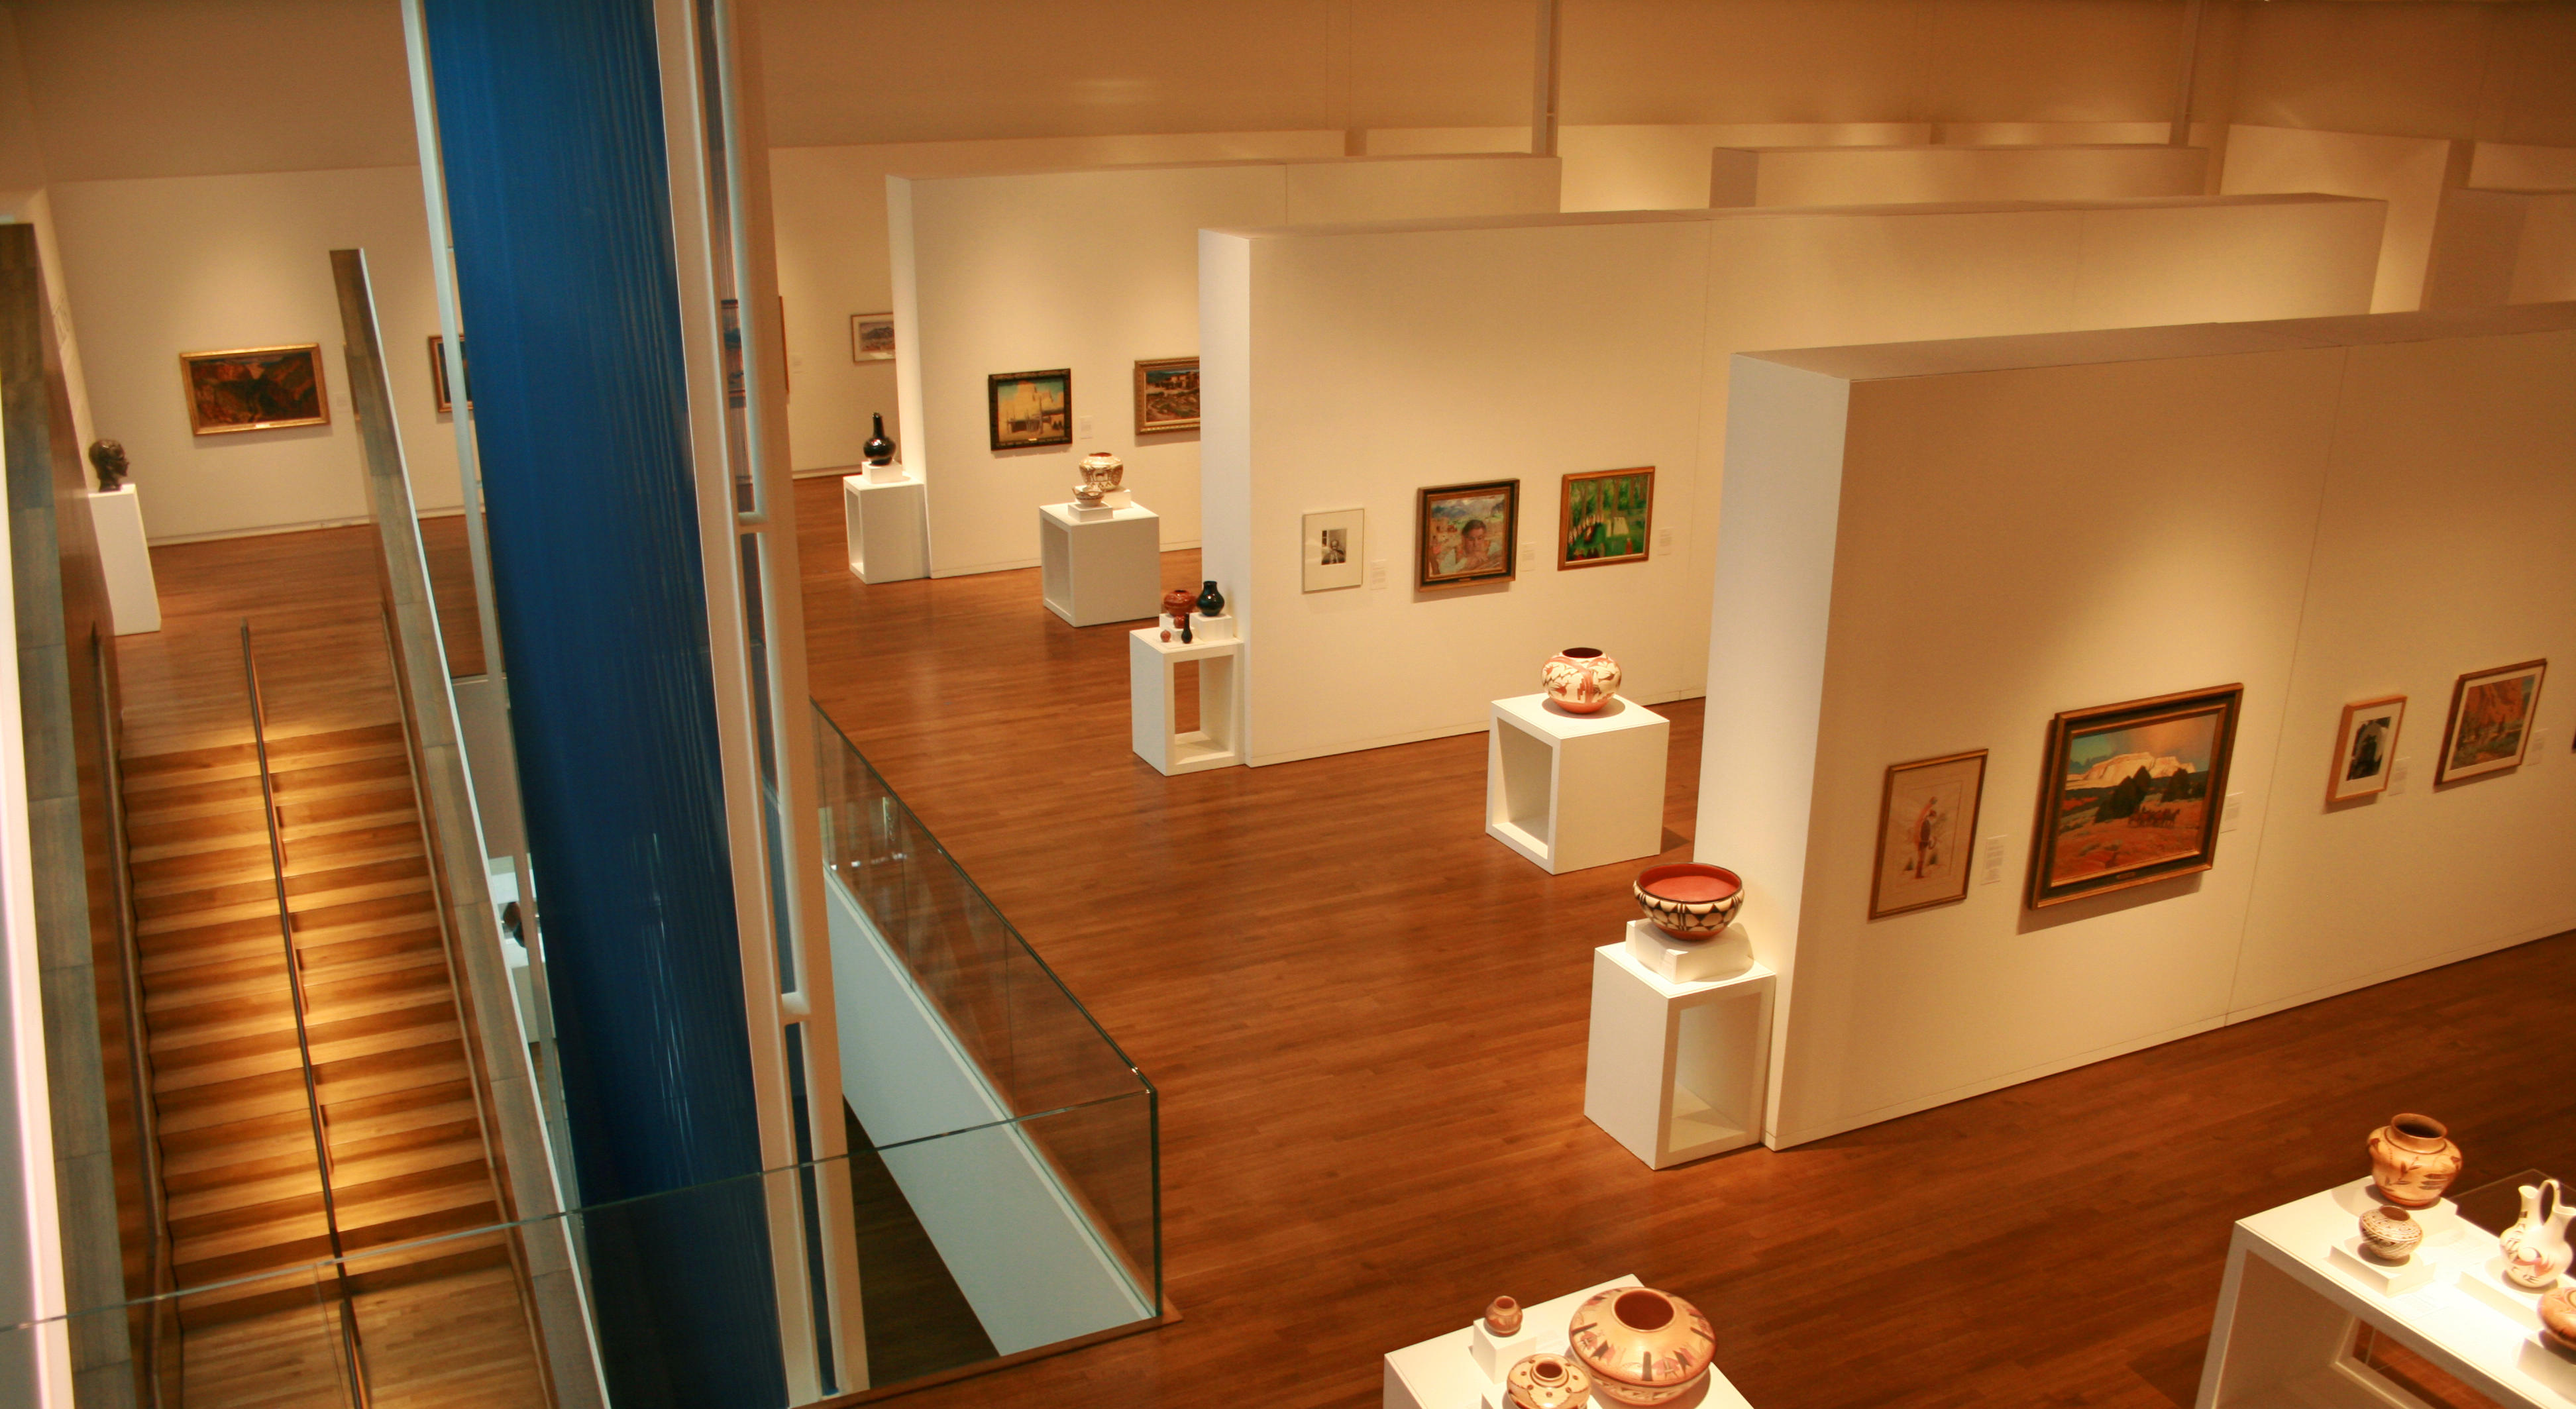 Fred Jones Jr. Museum Of Art image 3